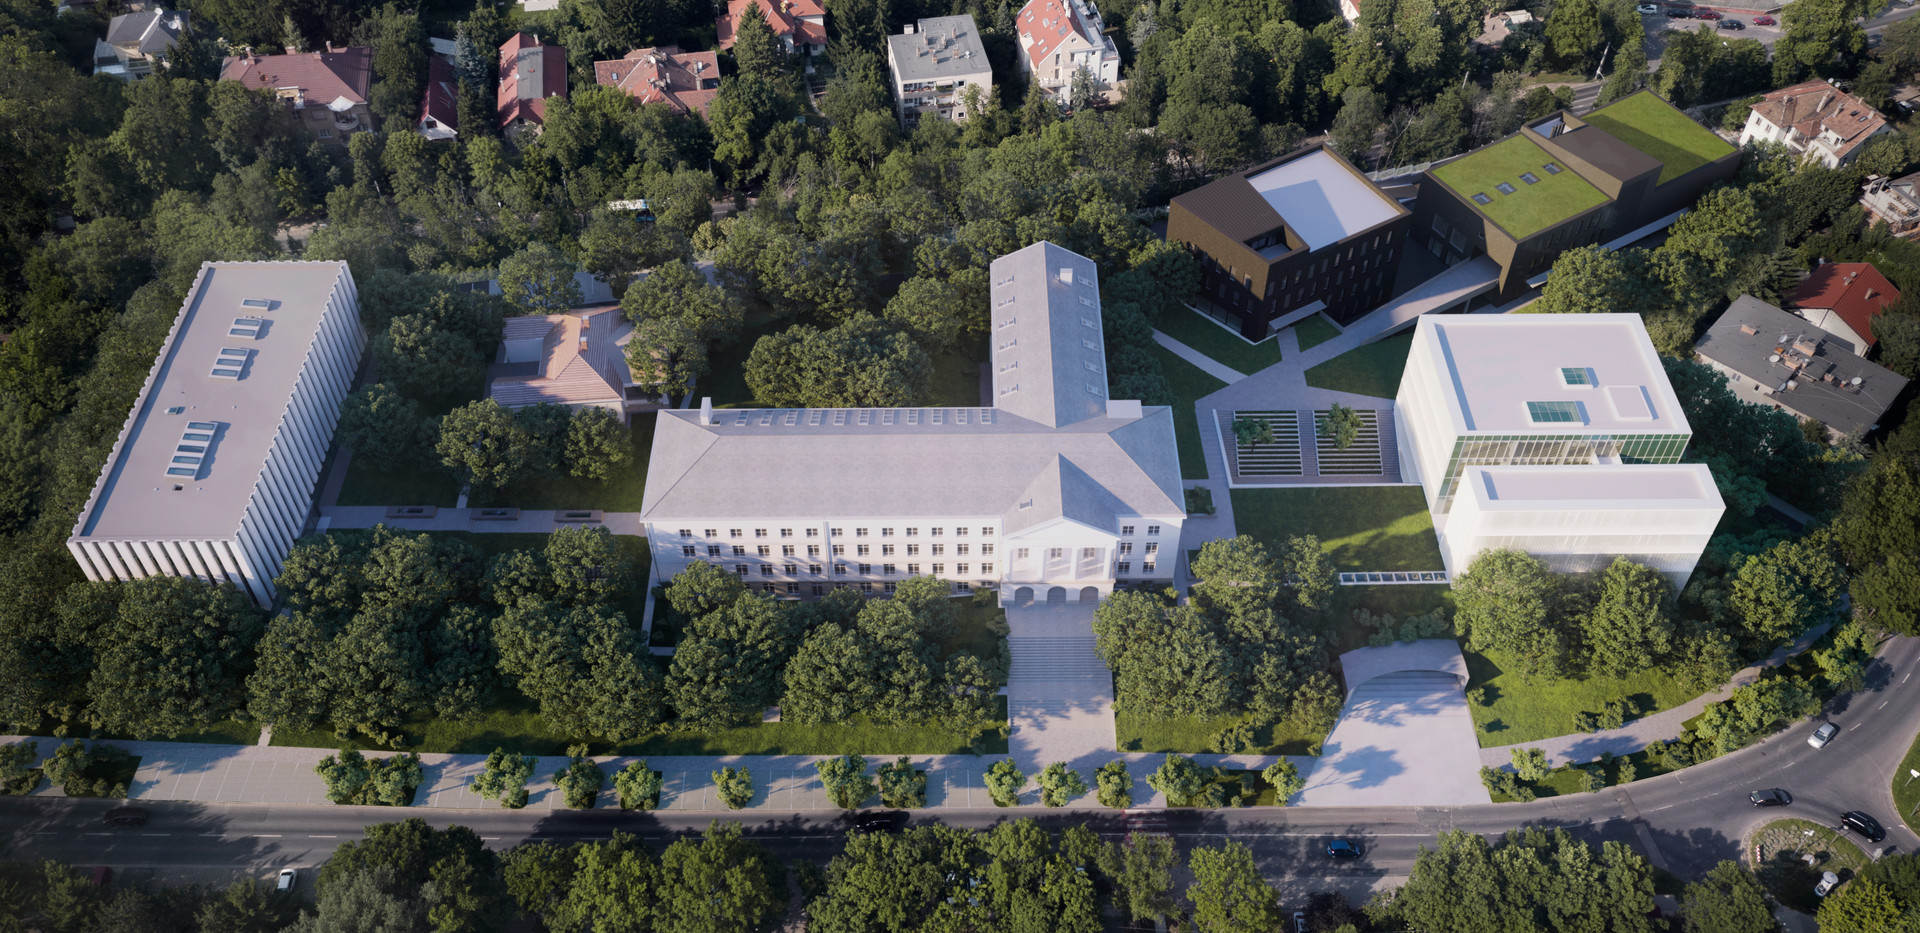 MOME_campus_bird's-eye_view